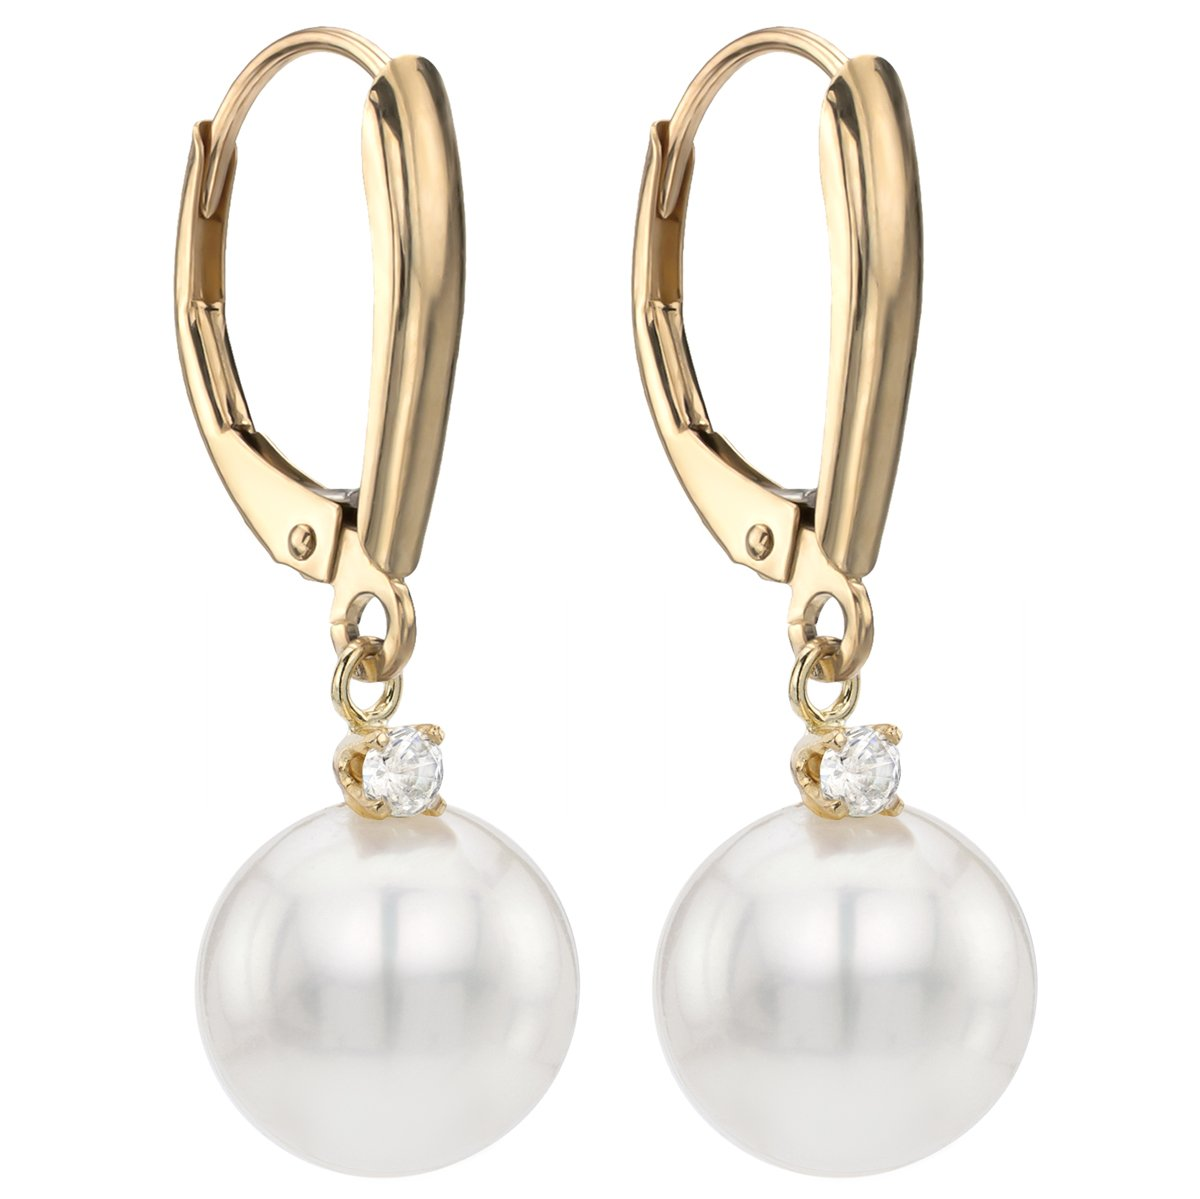 14k Yellow Gold 1/10cttw diamond 9-9.5mm White Round Freshwater Cultured Pearl Lever-back Earrings by La Regis Jewelry (Image #2)